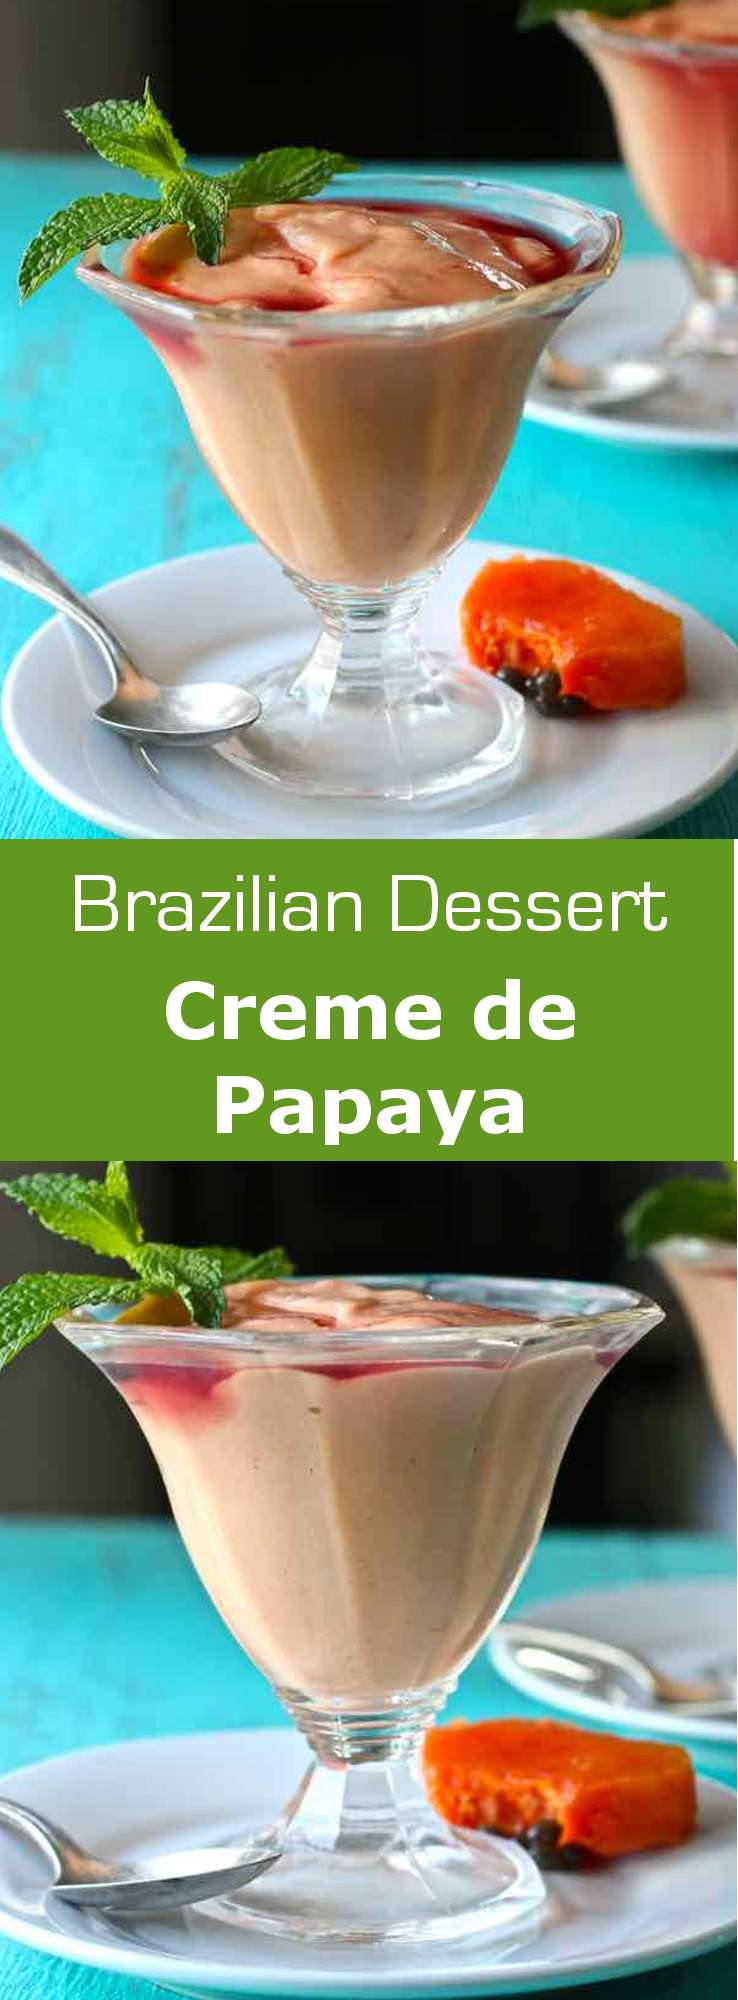 Creme de papaya authentic brazilian recipe 196 flavors creme de papaya is a very easy to make luscious brazilian dessert that consists of papaya forumfinder Images